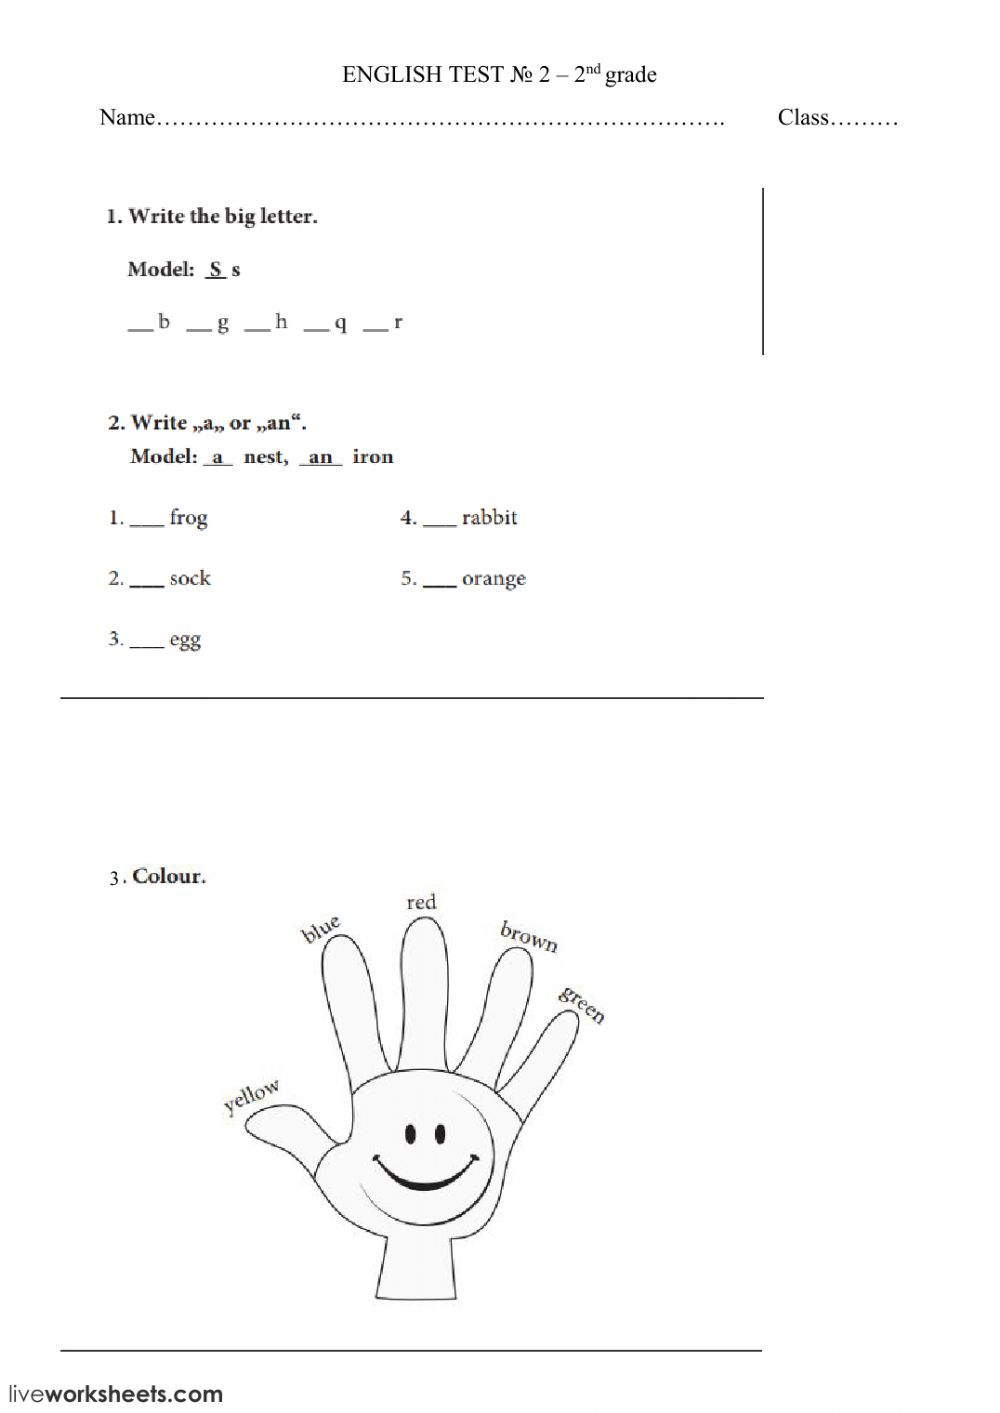 Letters, Colours, A - An - Interactive Worksheet with regard to Alphabet Worksheets Grade 2